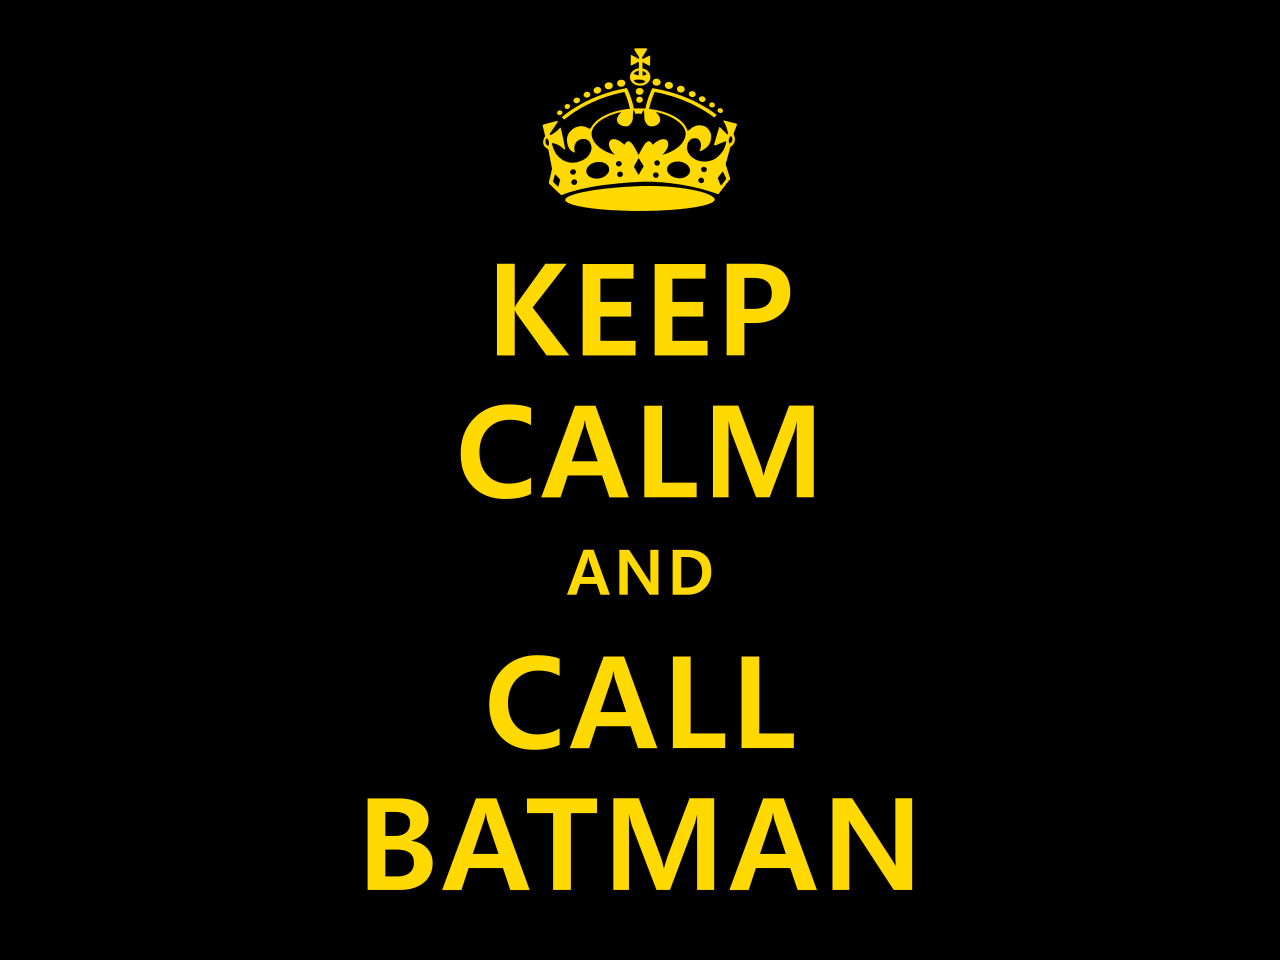 keep_calm_and_call_batman_by_koboot-d312